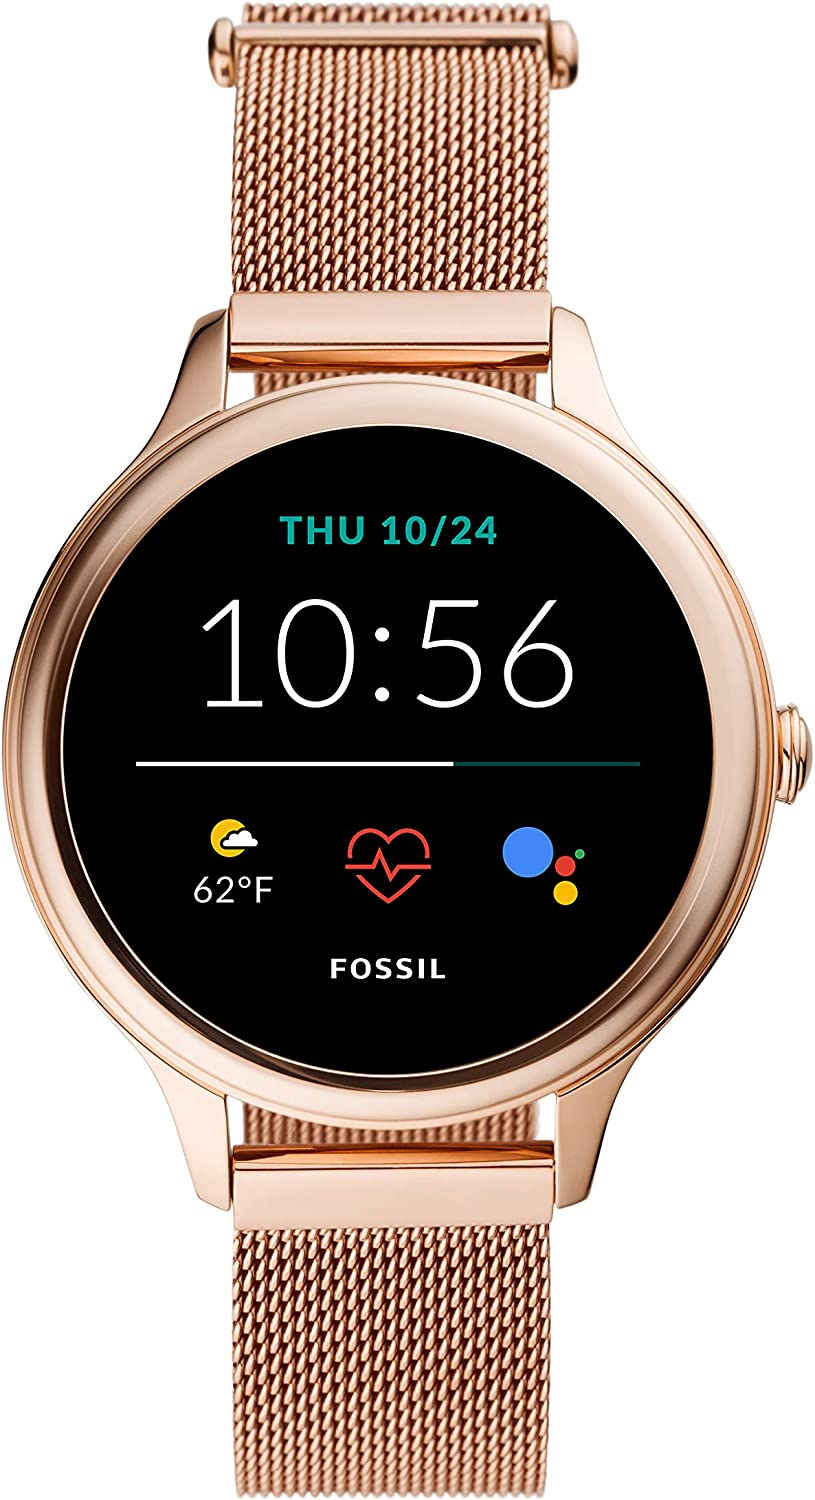 NEW Fossil Women's Gen 5E 42mm Stainless Steel Touchscreen Smartwatch with Speaker, Heart Rate, GPS, NFC, and Smartphone Notifications